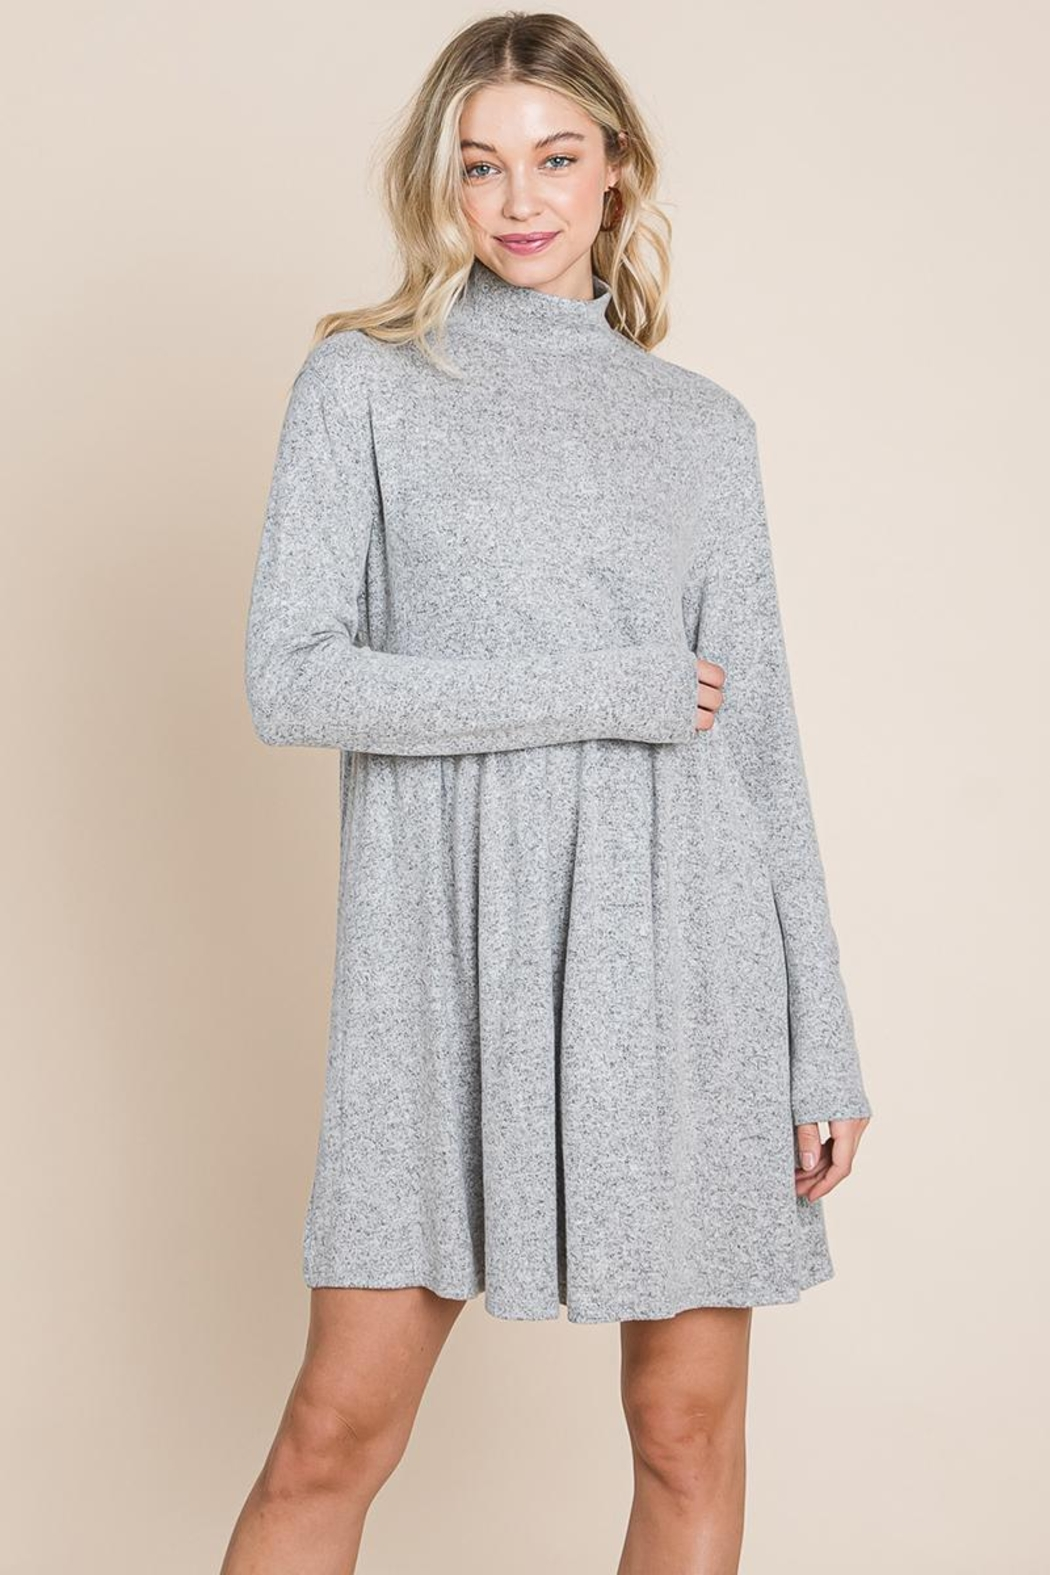 ROLYPOLY Apparel Turtle Neck Hacci Pleated Layered Swing Dress - Front Cropped Image